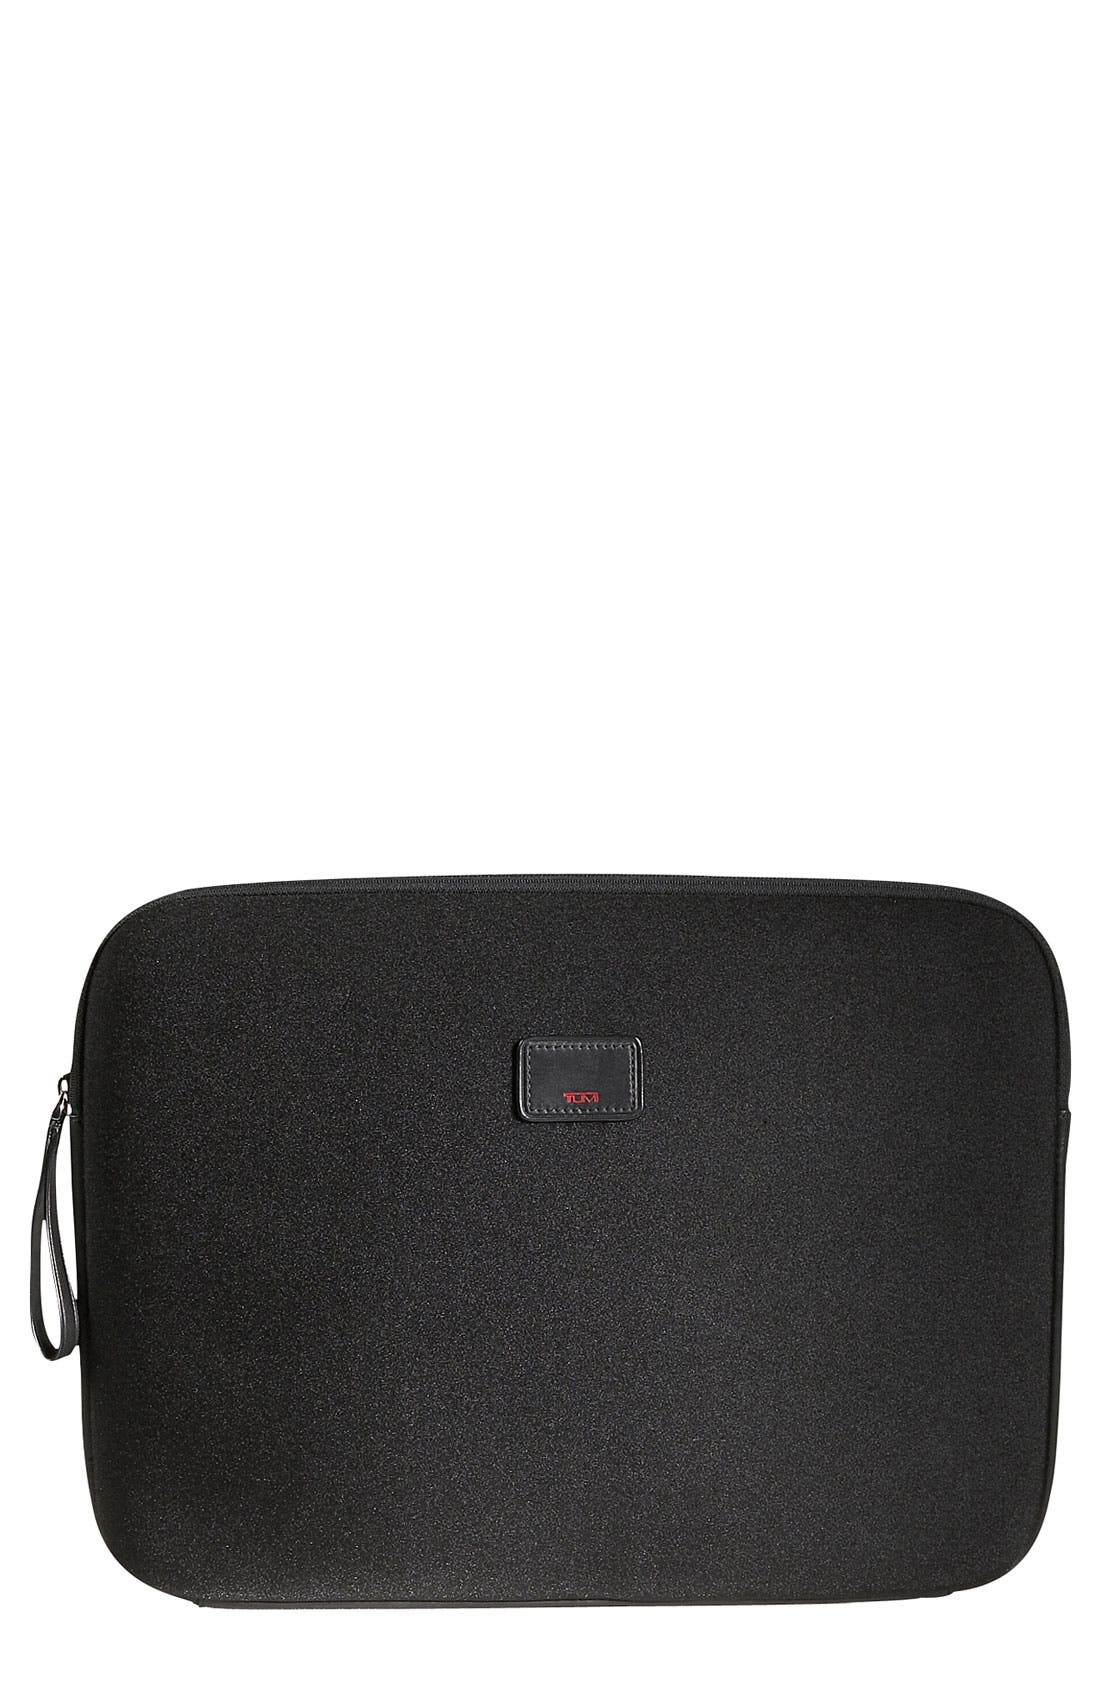 Main Image - Tumi 'Alpha - Medium' Laptop Cover (15 Inch)